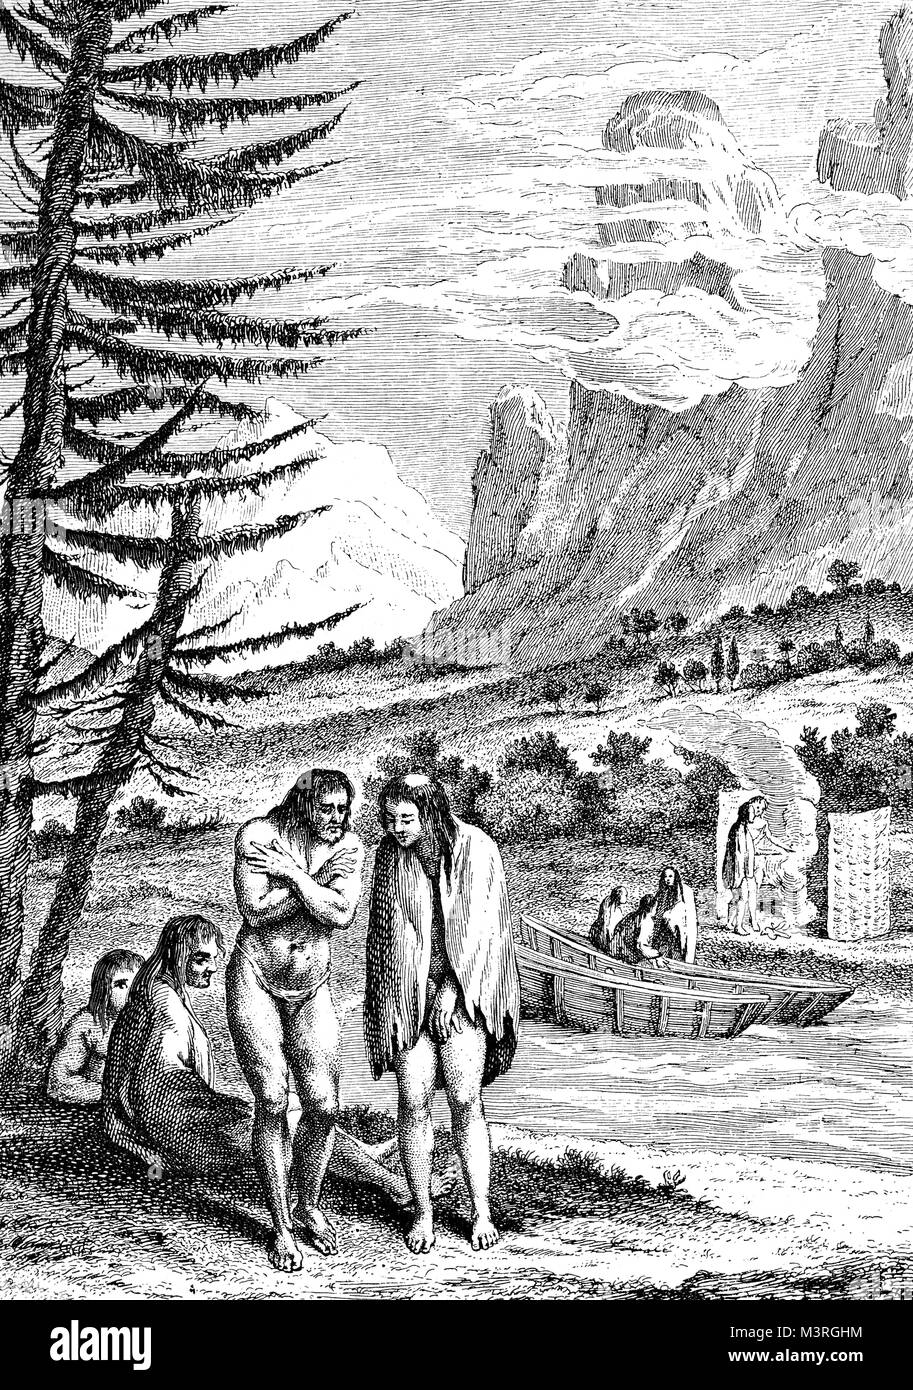 Portrait of people native of Patagonia, South America, 1754 year engraving - Stock Image